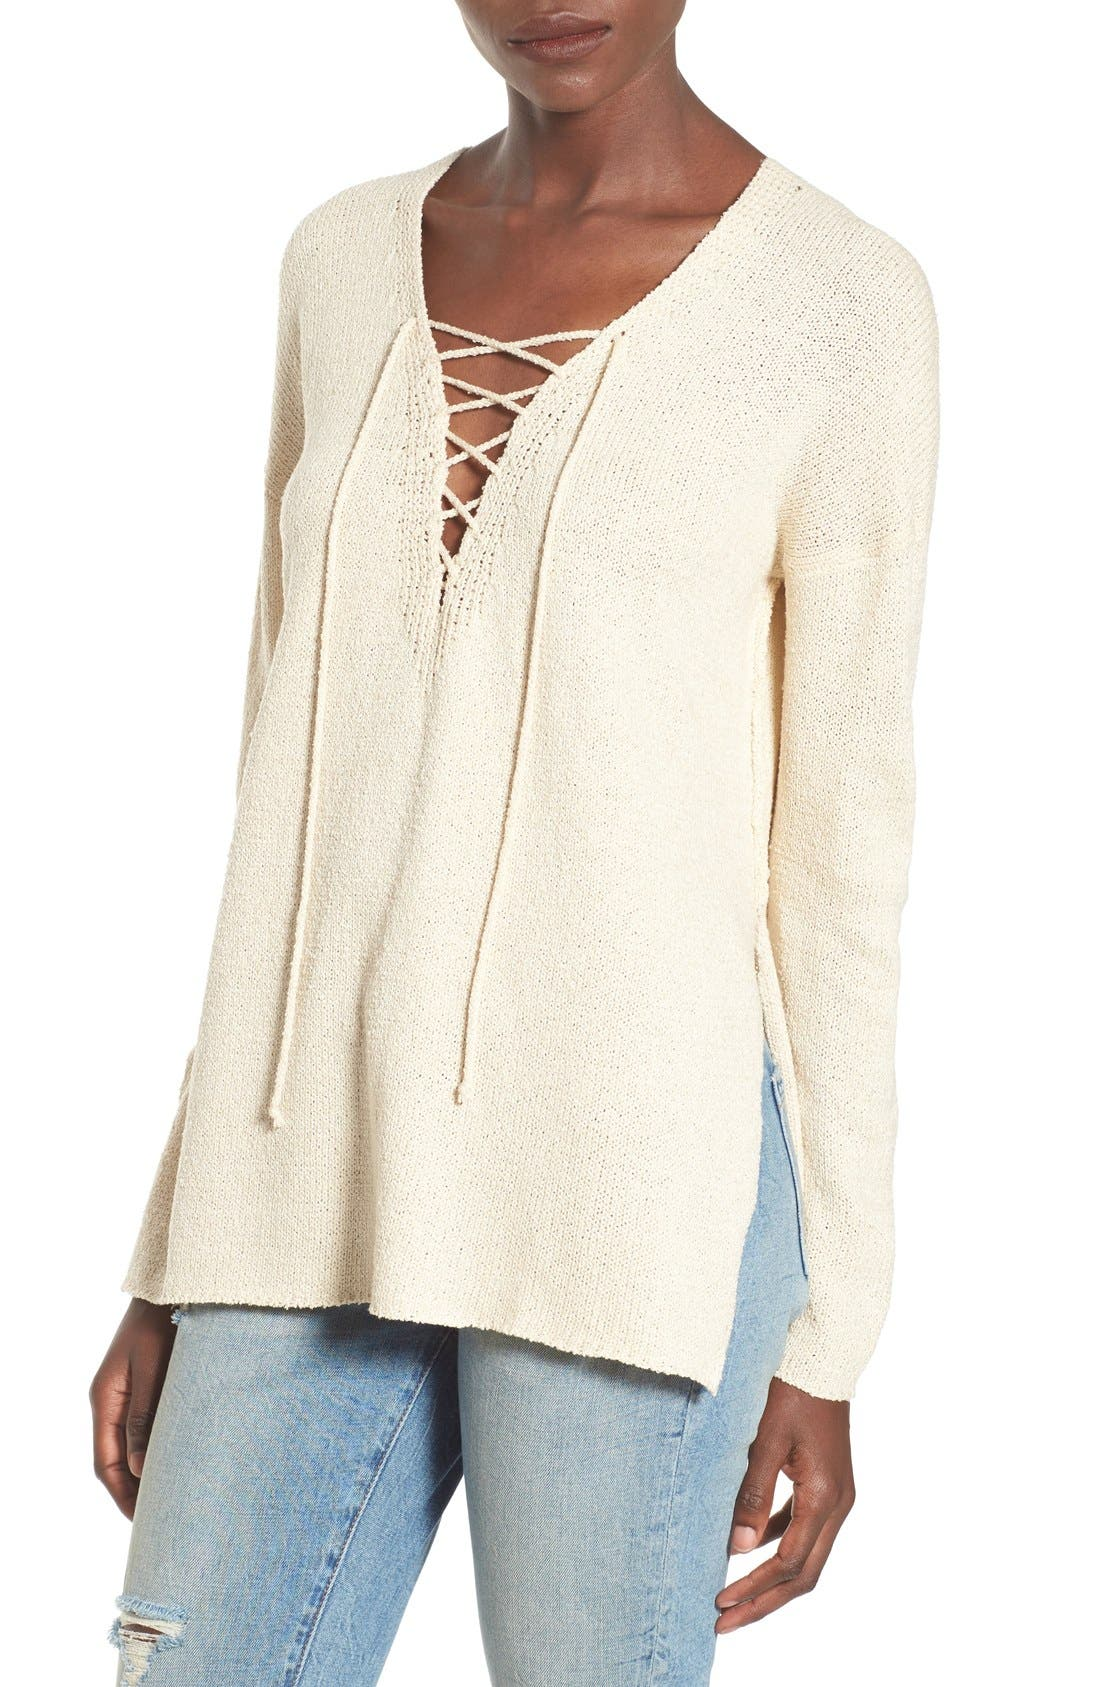 ASTR Lace-Up Sweater,                         Main,                         color, Ivory